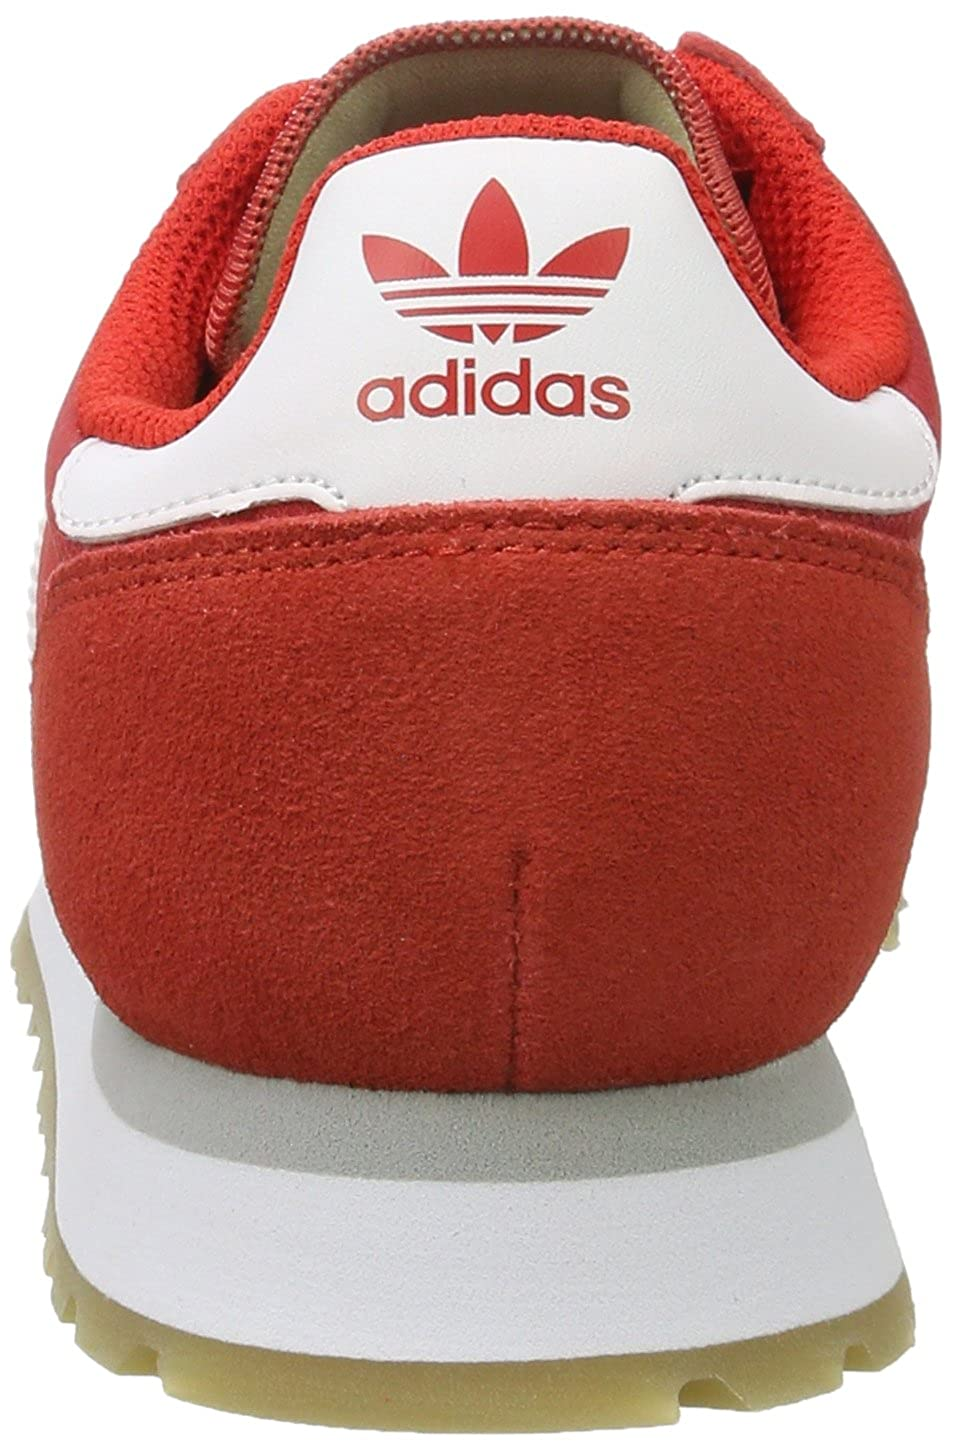 adidas Men s Haven Trainers Fitness Shoes  Amazon.co.uk  Shoes   Bags 7ddfc6dbb